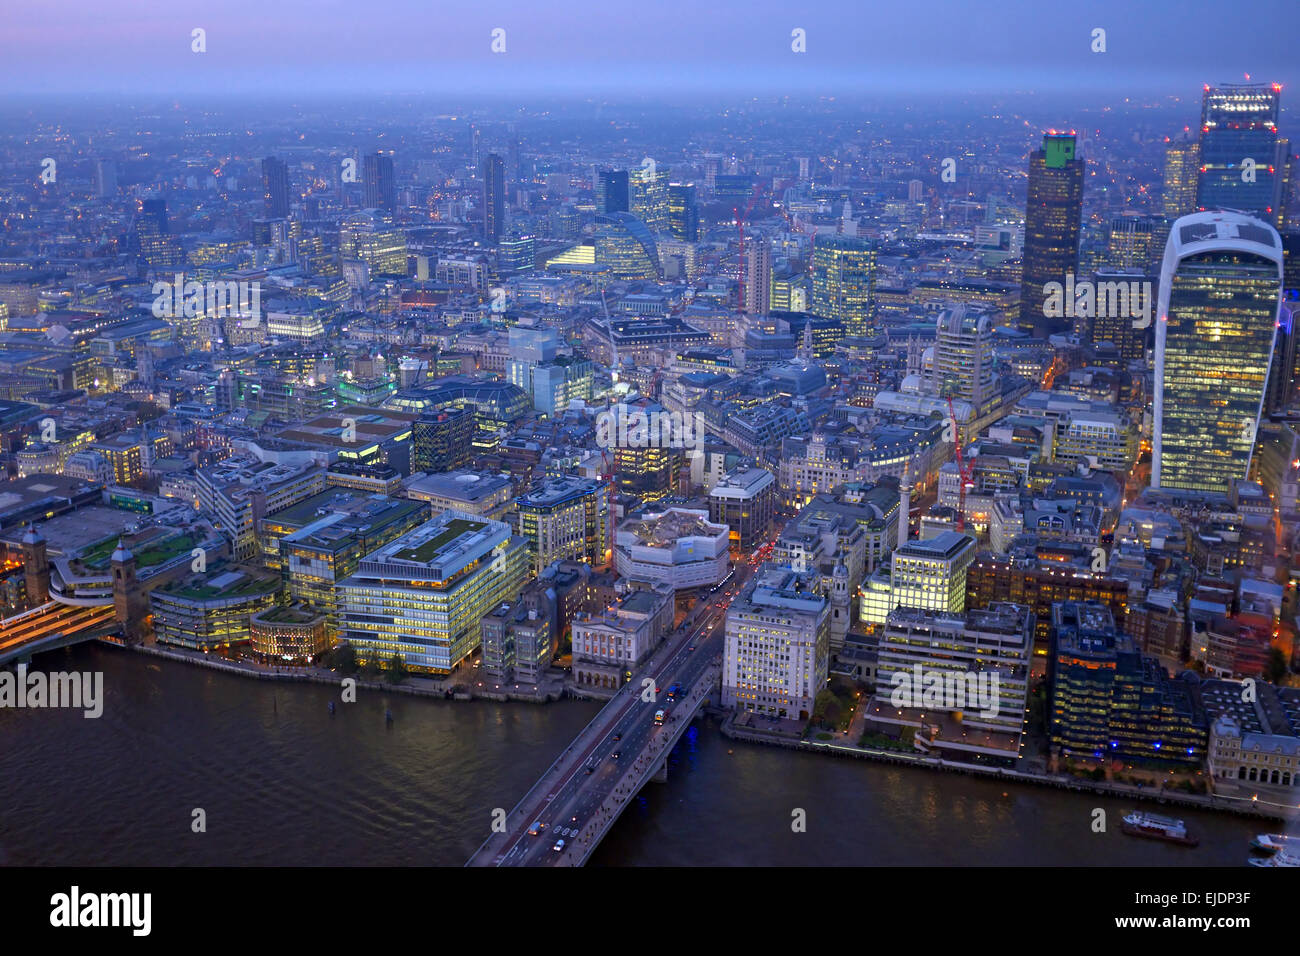 London rooftop view panorama at sunset with urban architectures with Thames River at night - Stock Image